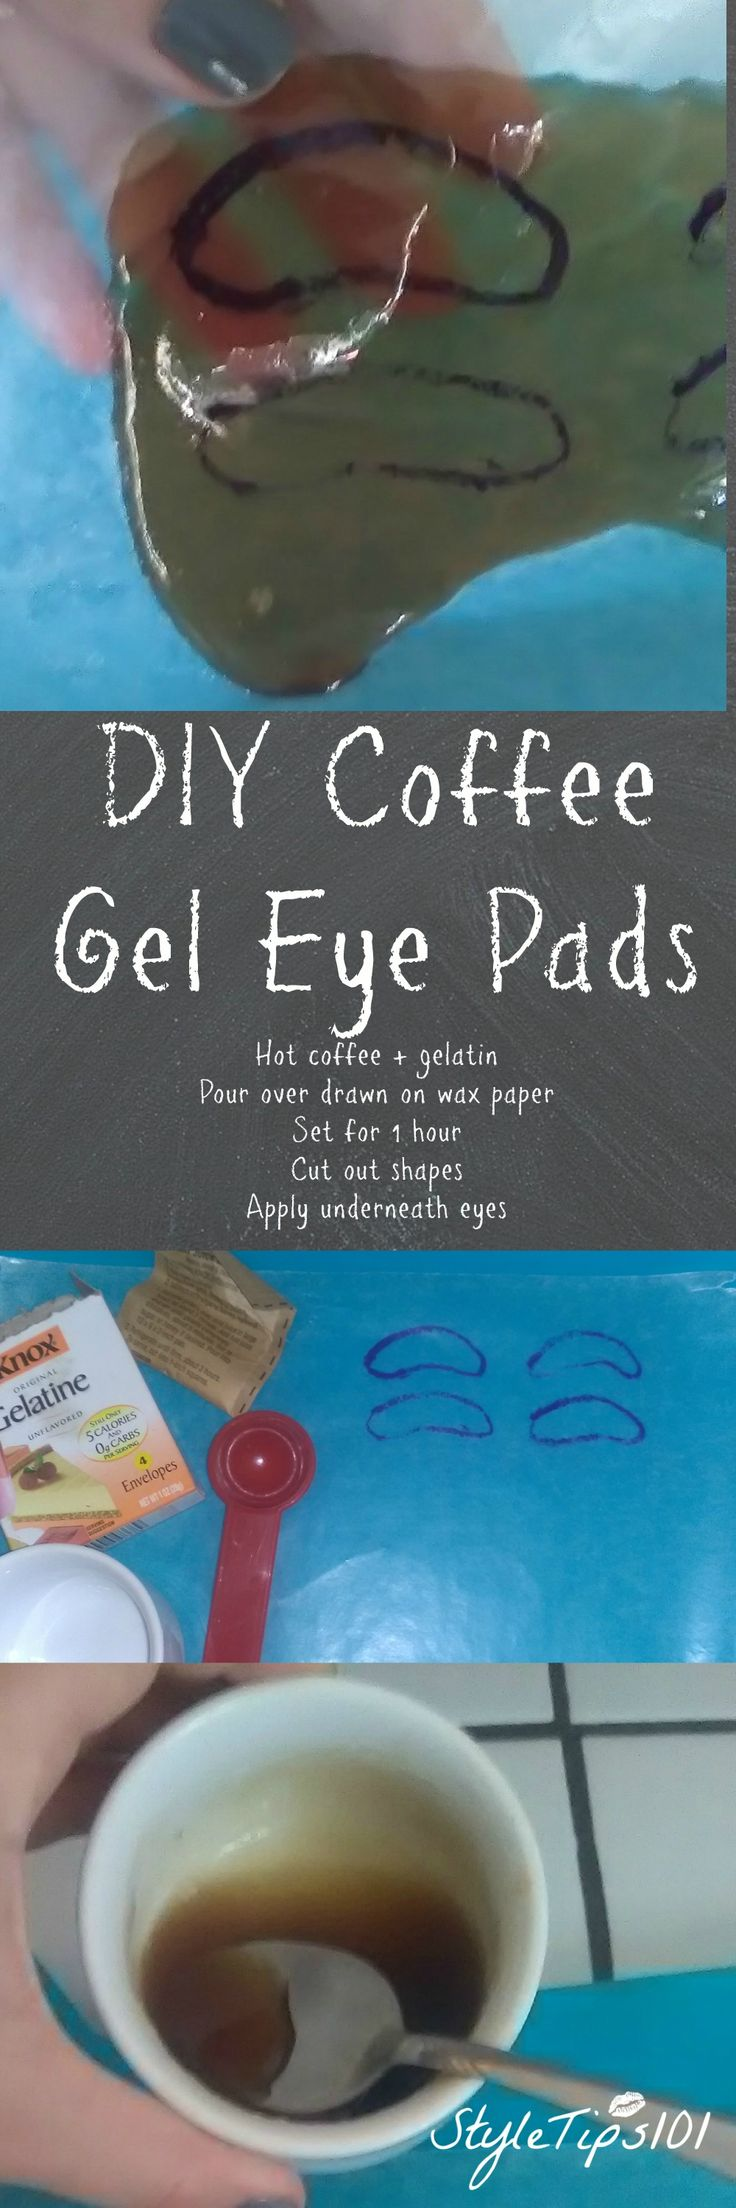 SO easy to make and your dark circles will be gone after just 1 use! Loving this DIY gel eye pads!